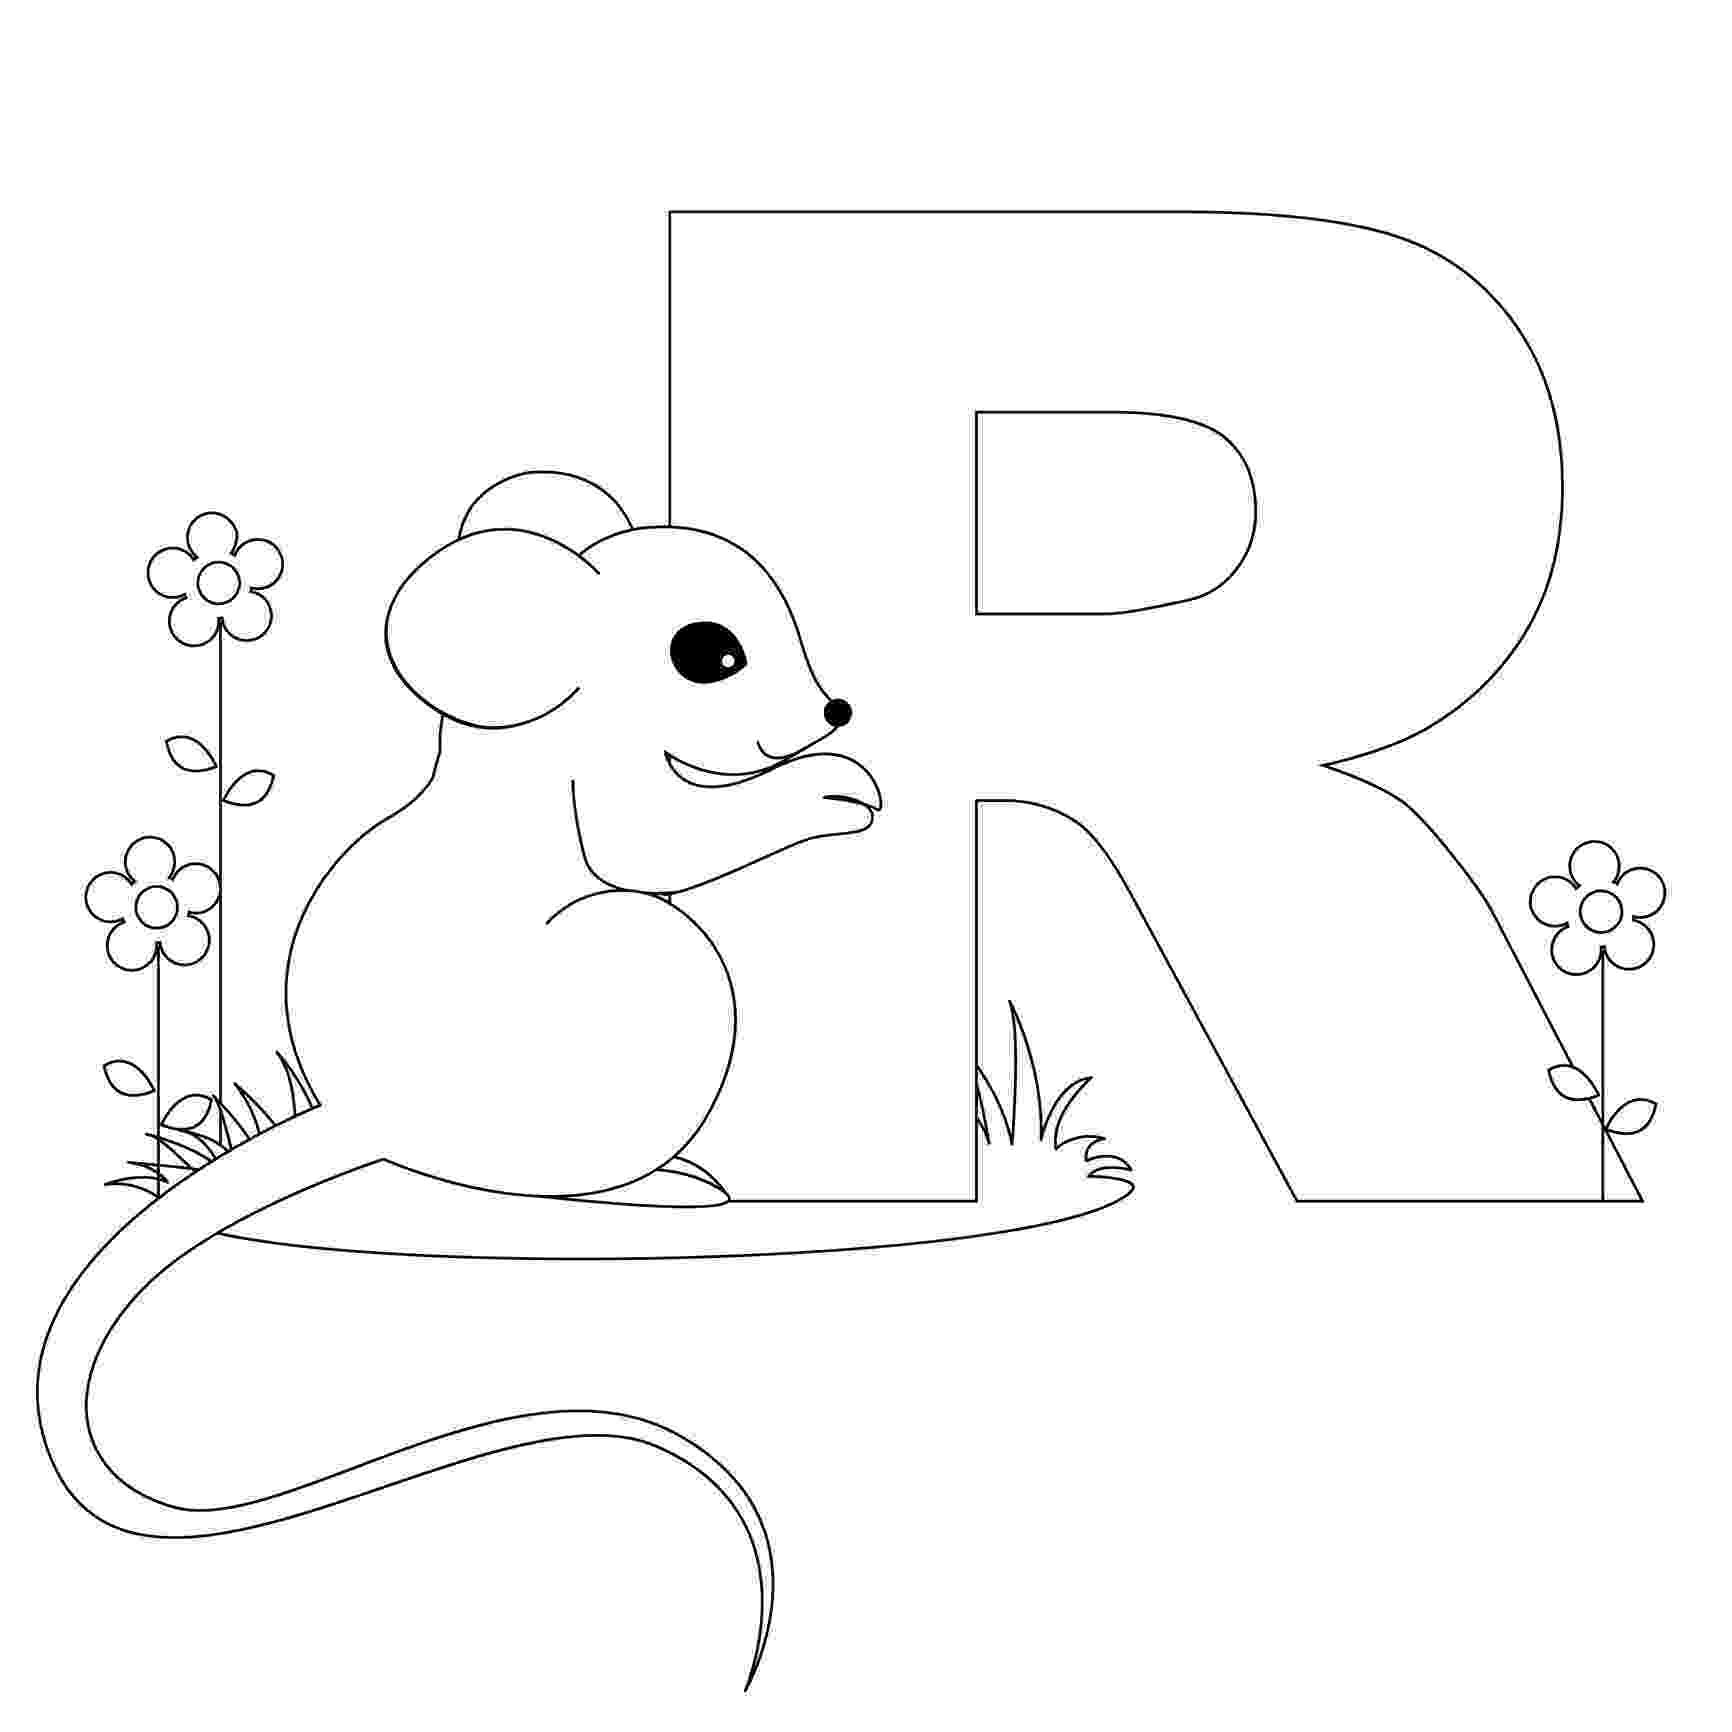 abc coloring book printable free printable alphabet coloring pages for kids best abc coloring book printable